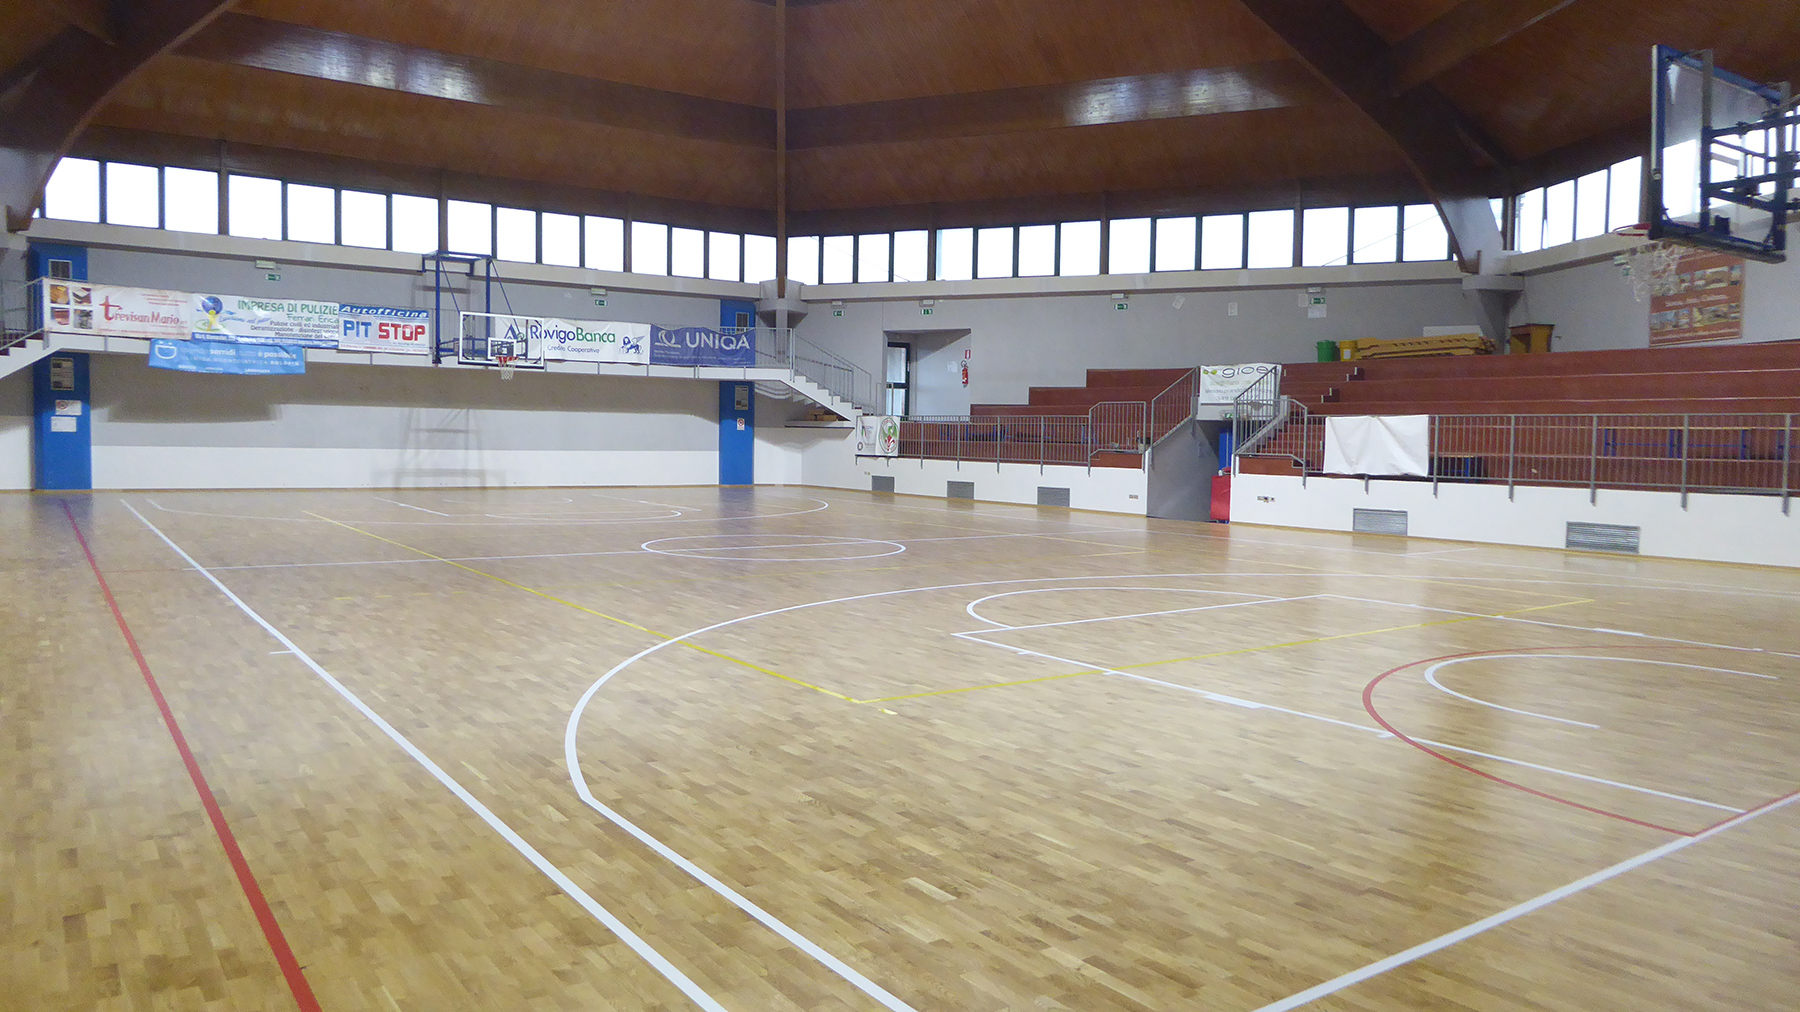 The basketball, volleyball and touchball fields have been marked